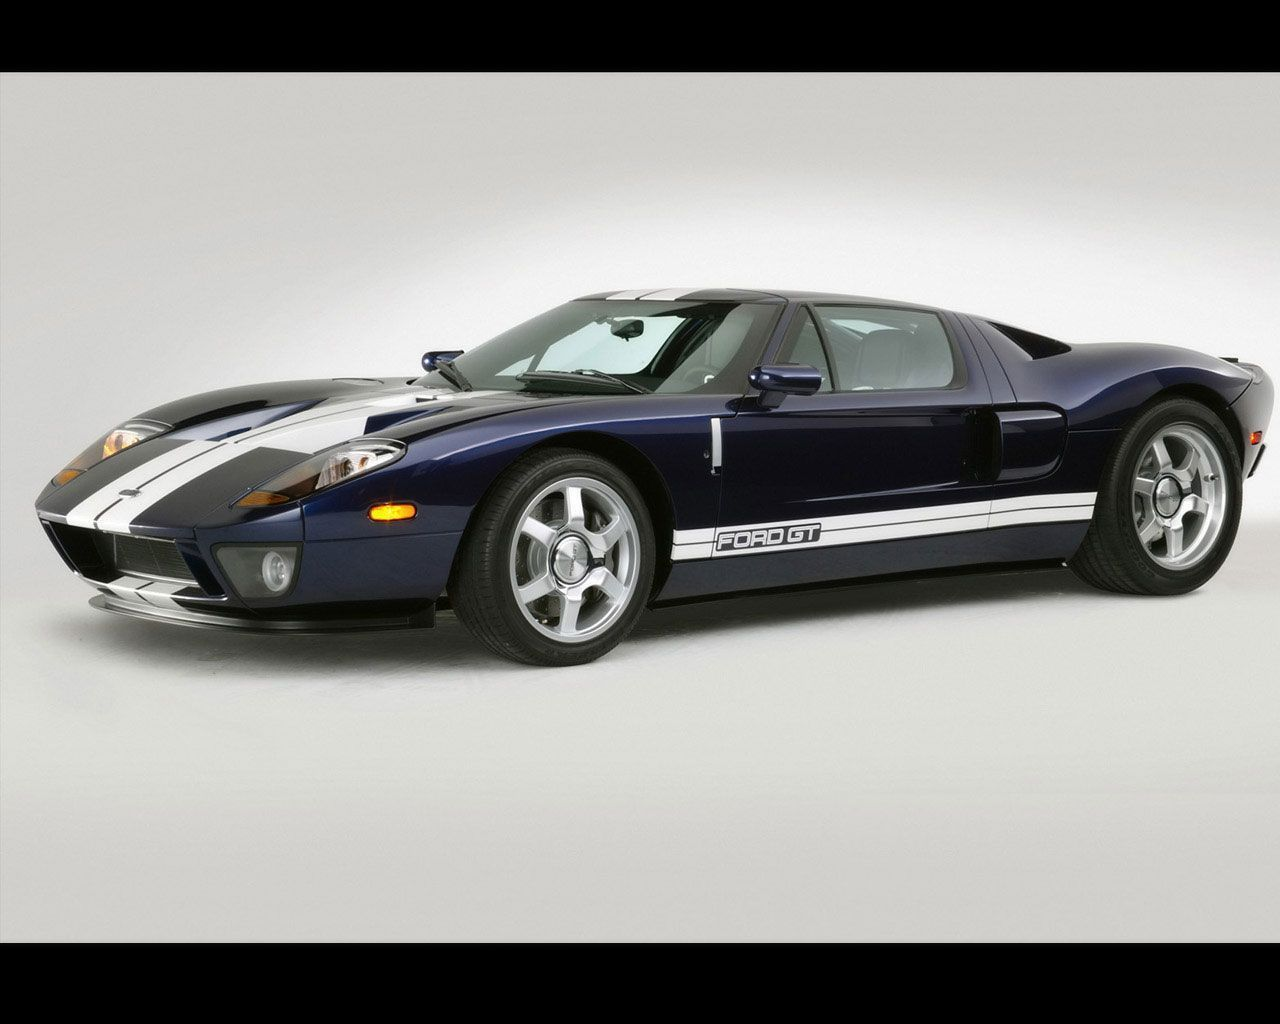 The Ford Gt Ford Gt Ford Gt40 Luxury Cars